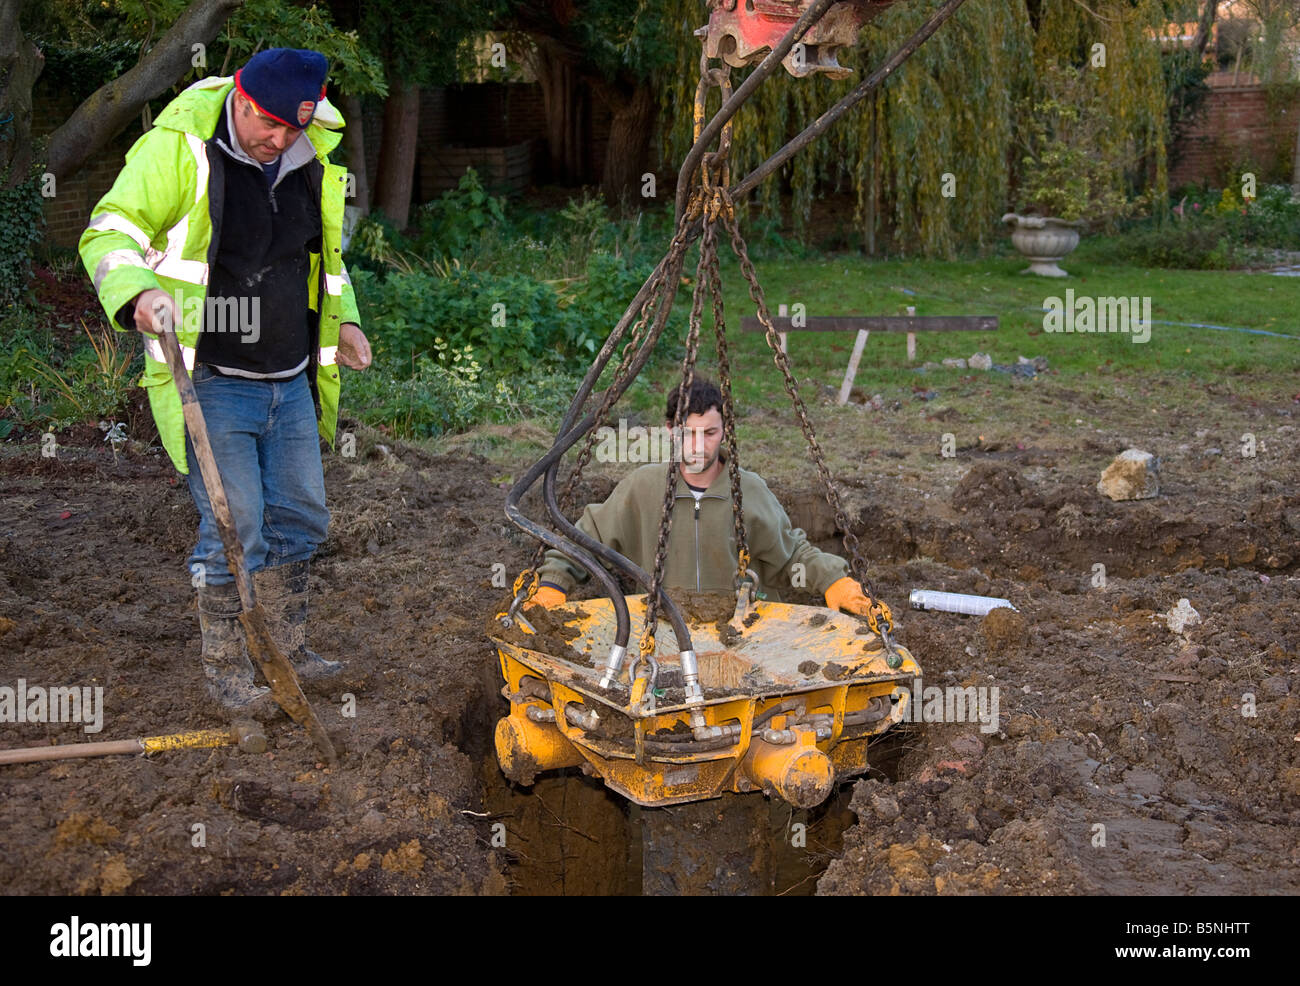 Workmen fitting a pile crusher over a pile, - Stock Image